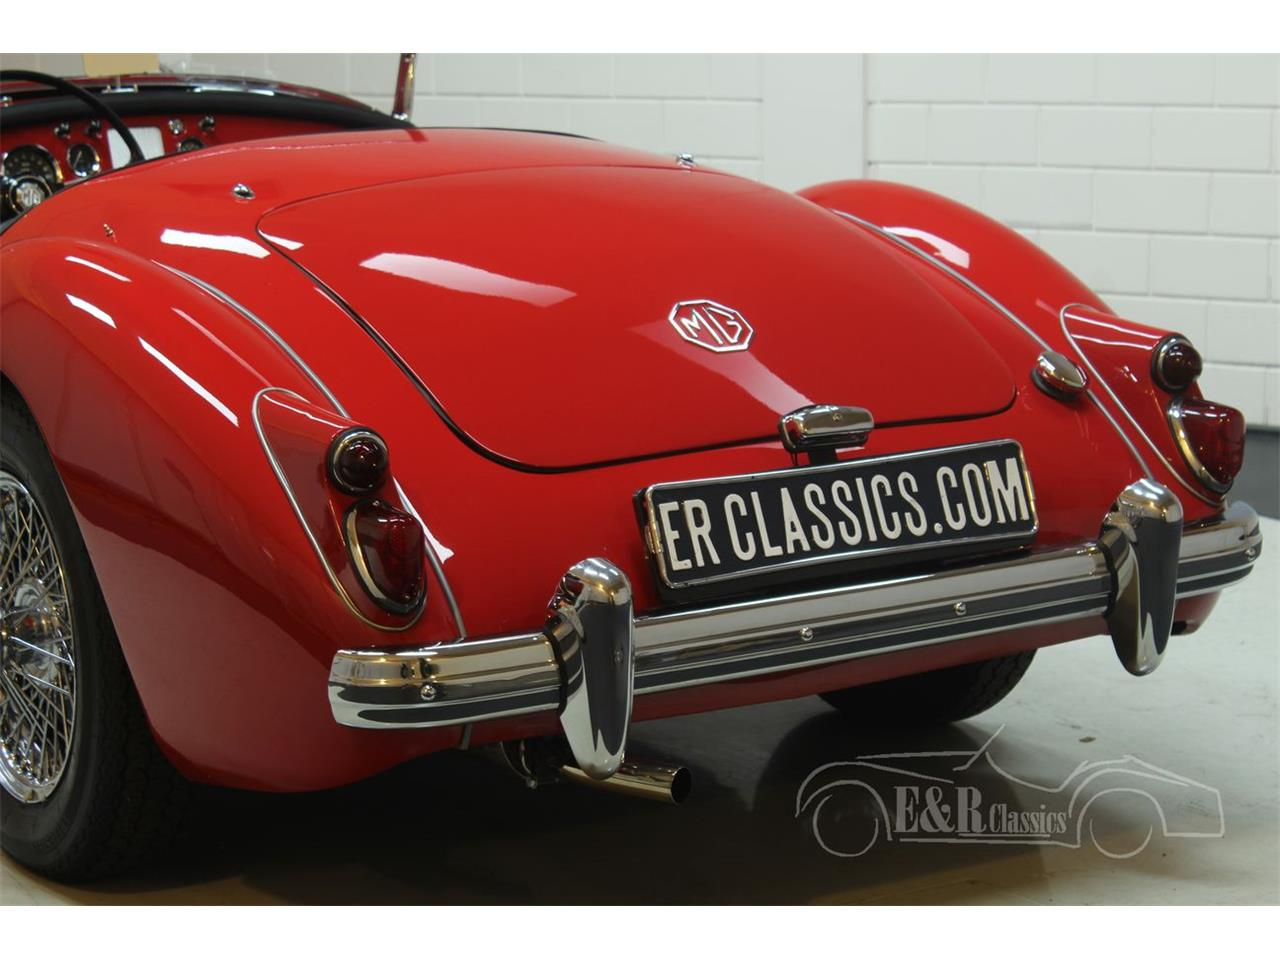 Large Picture of Classic '59 MGA located in Waalwijk - Keine Angabe - Offered by E & R Classics - PGST